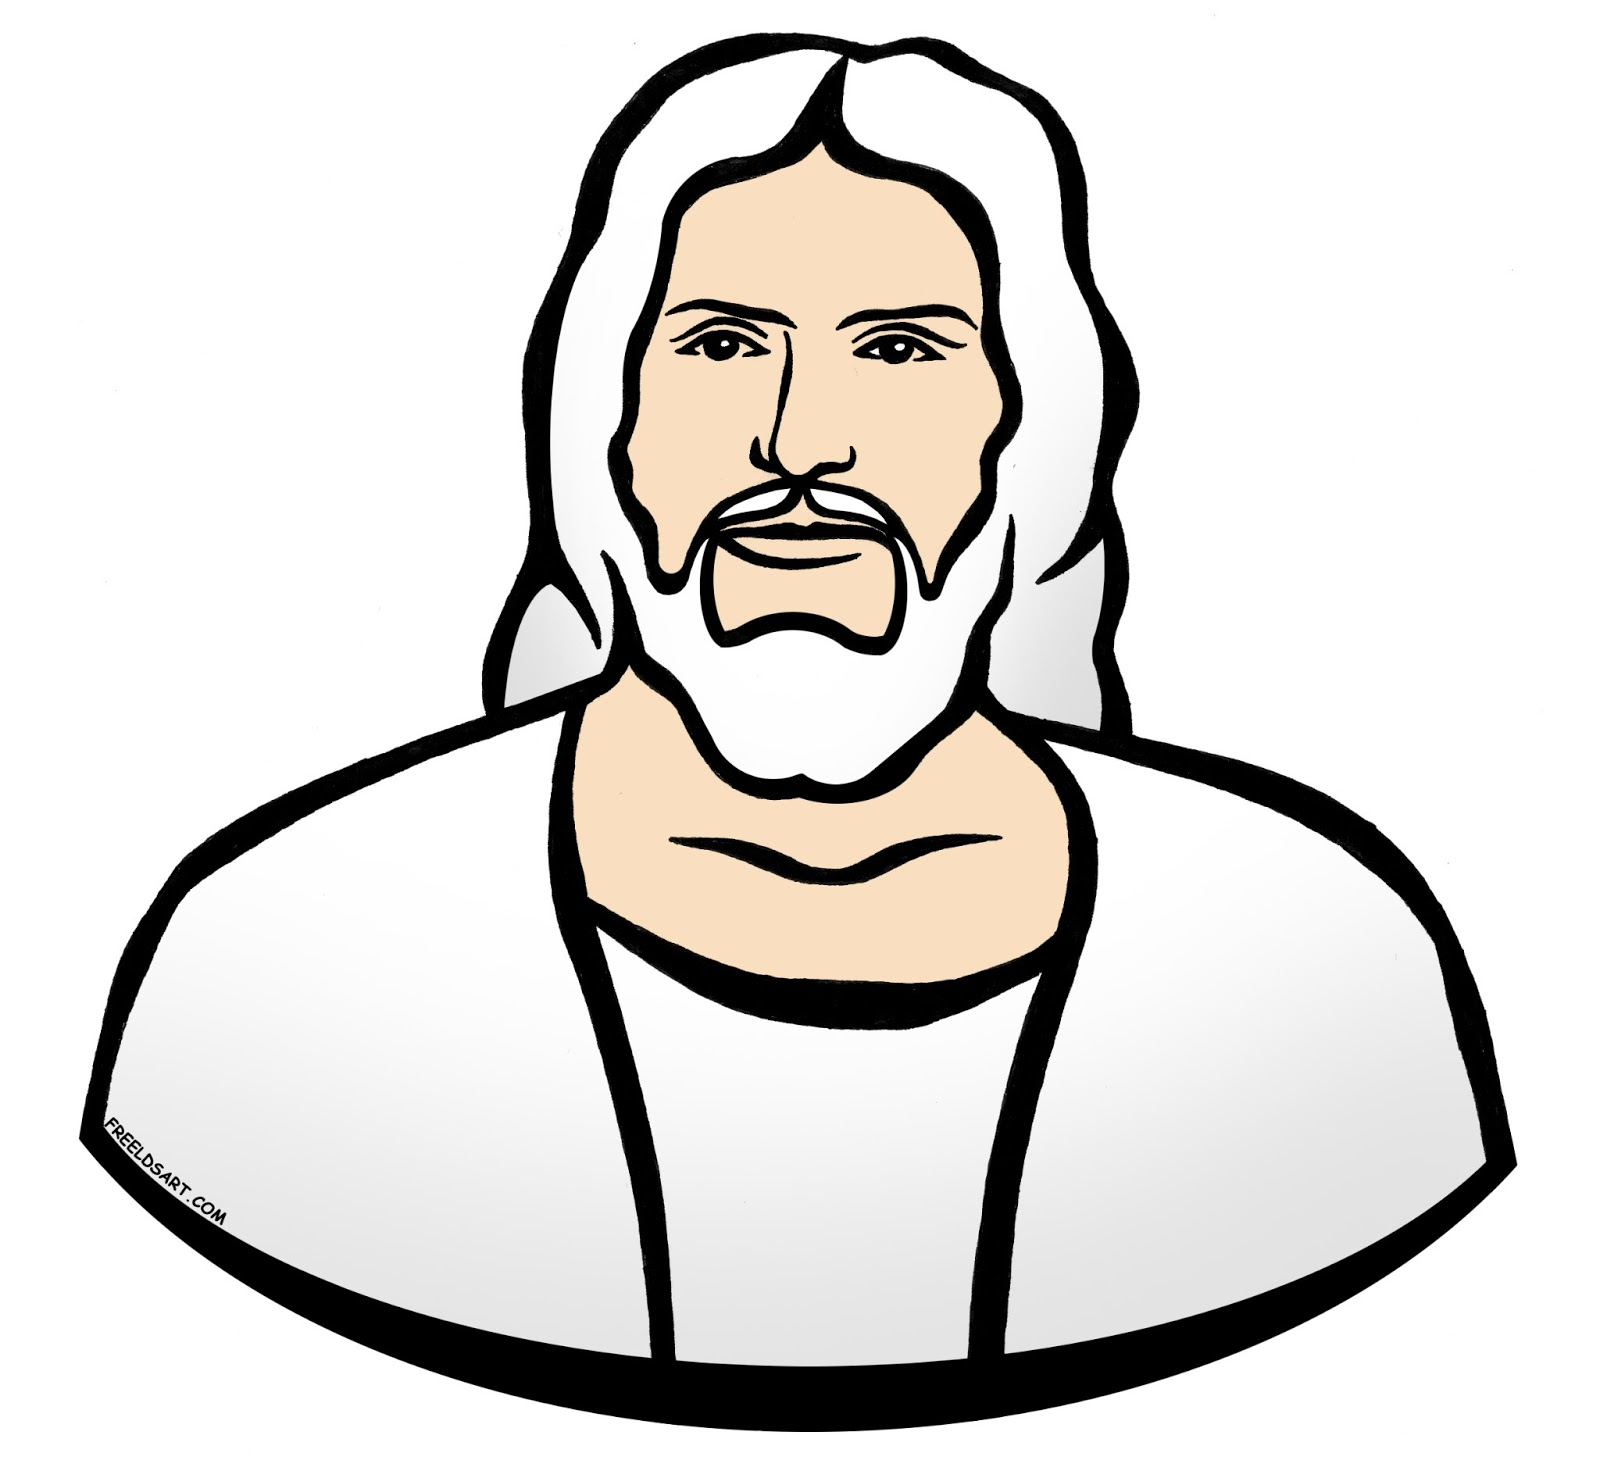 Lds black and white clipart of heavenly father